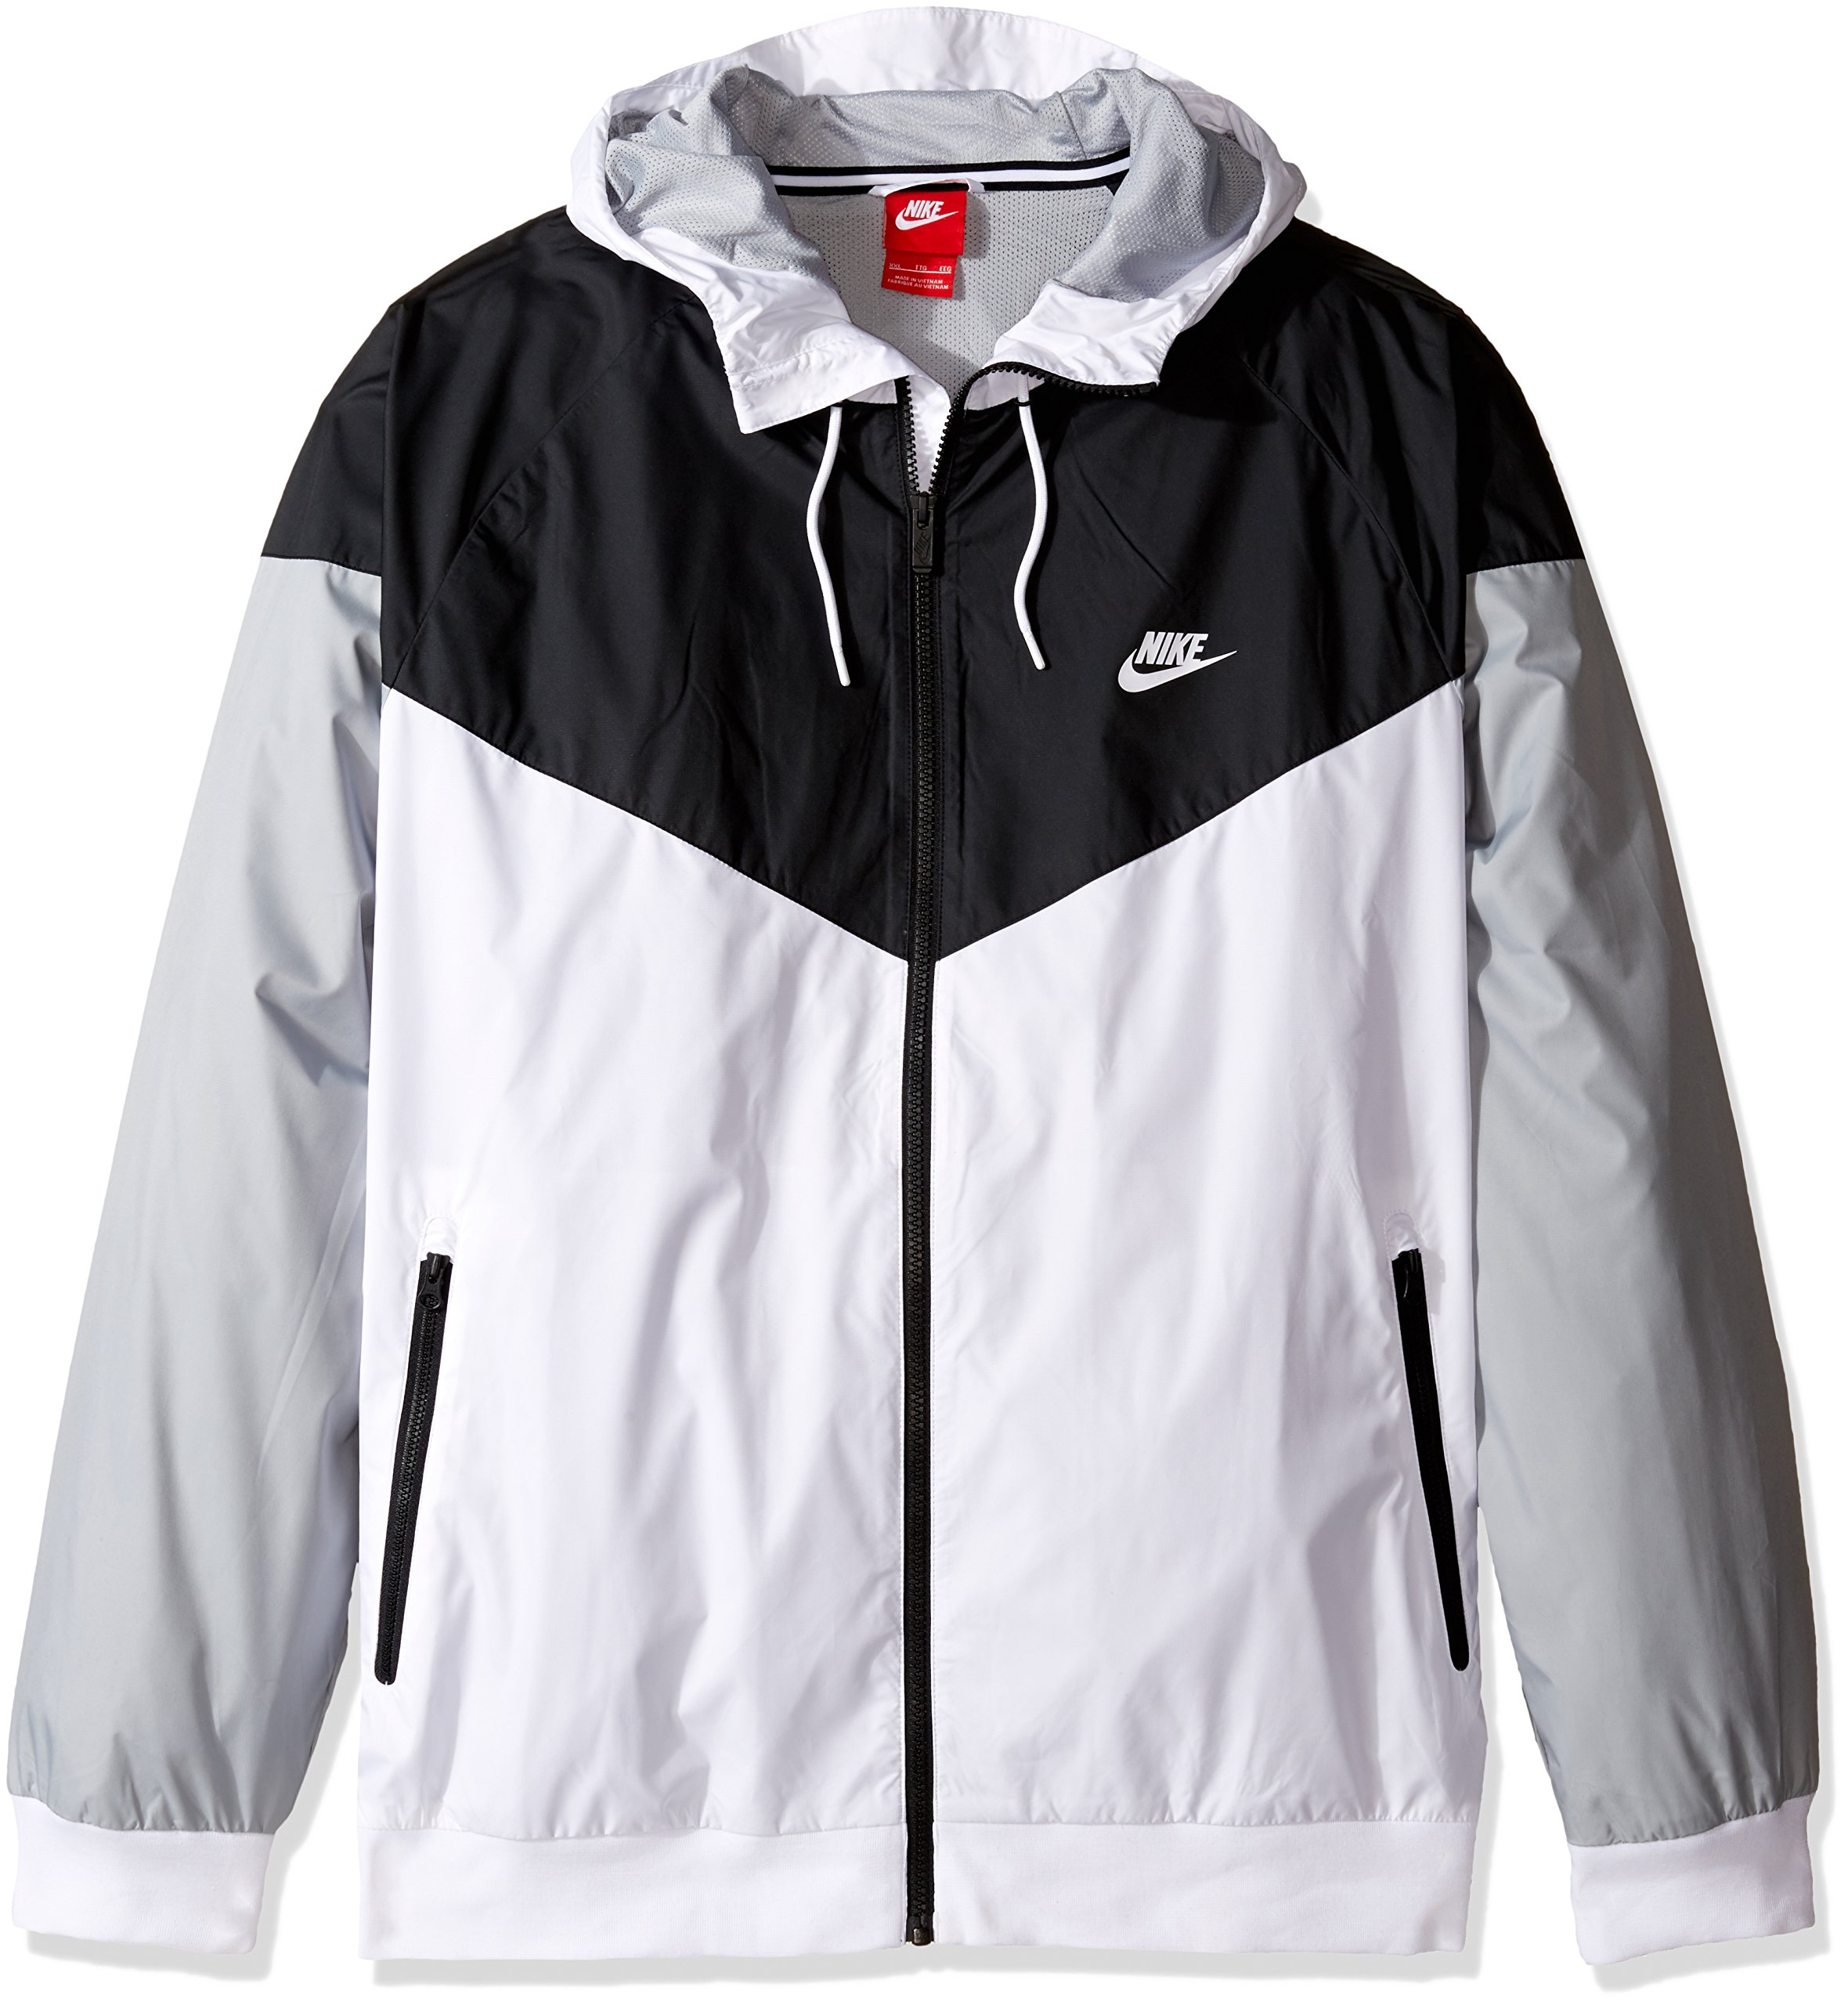 883157dc31bc Get Quotations · Men s Nike Sportswear Windrunner Jacket